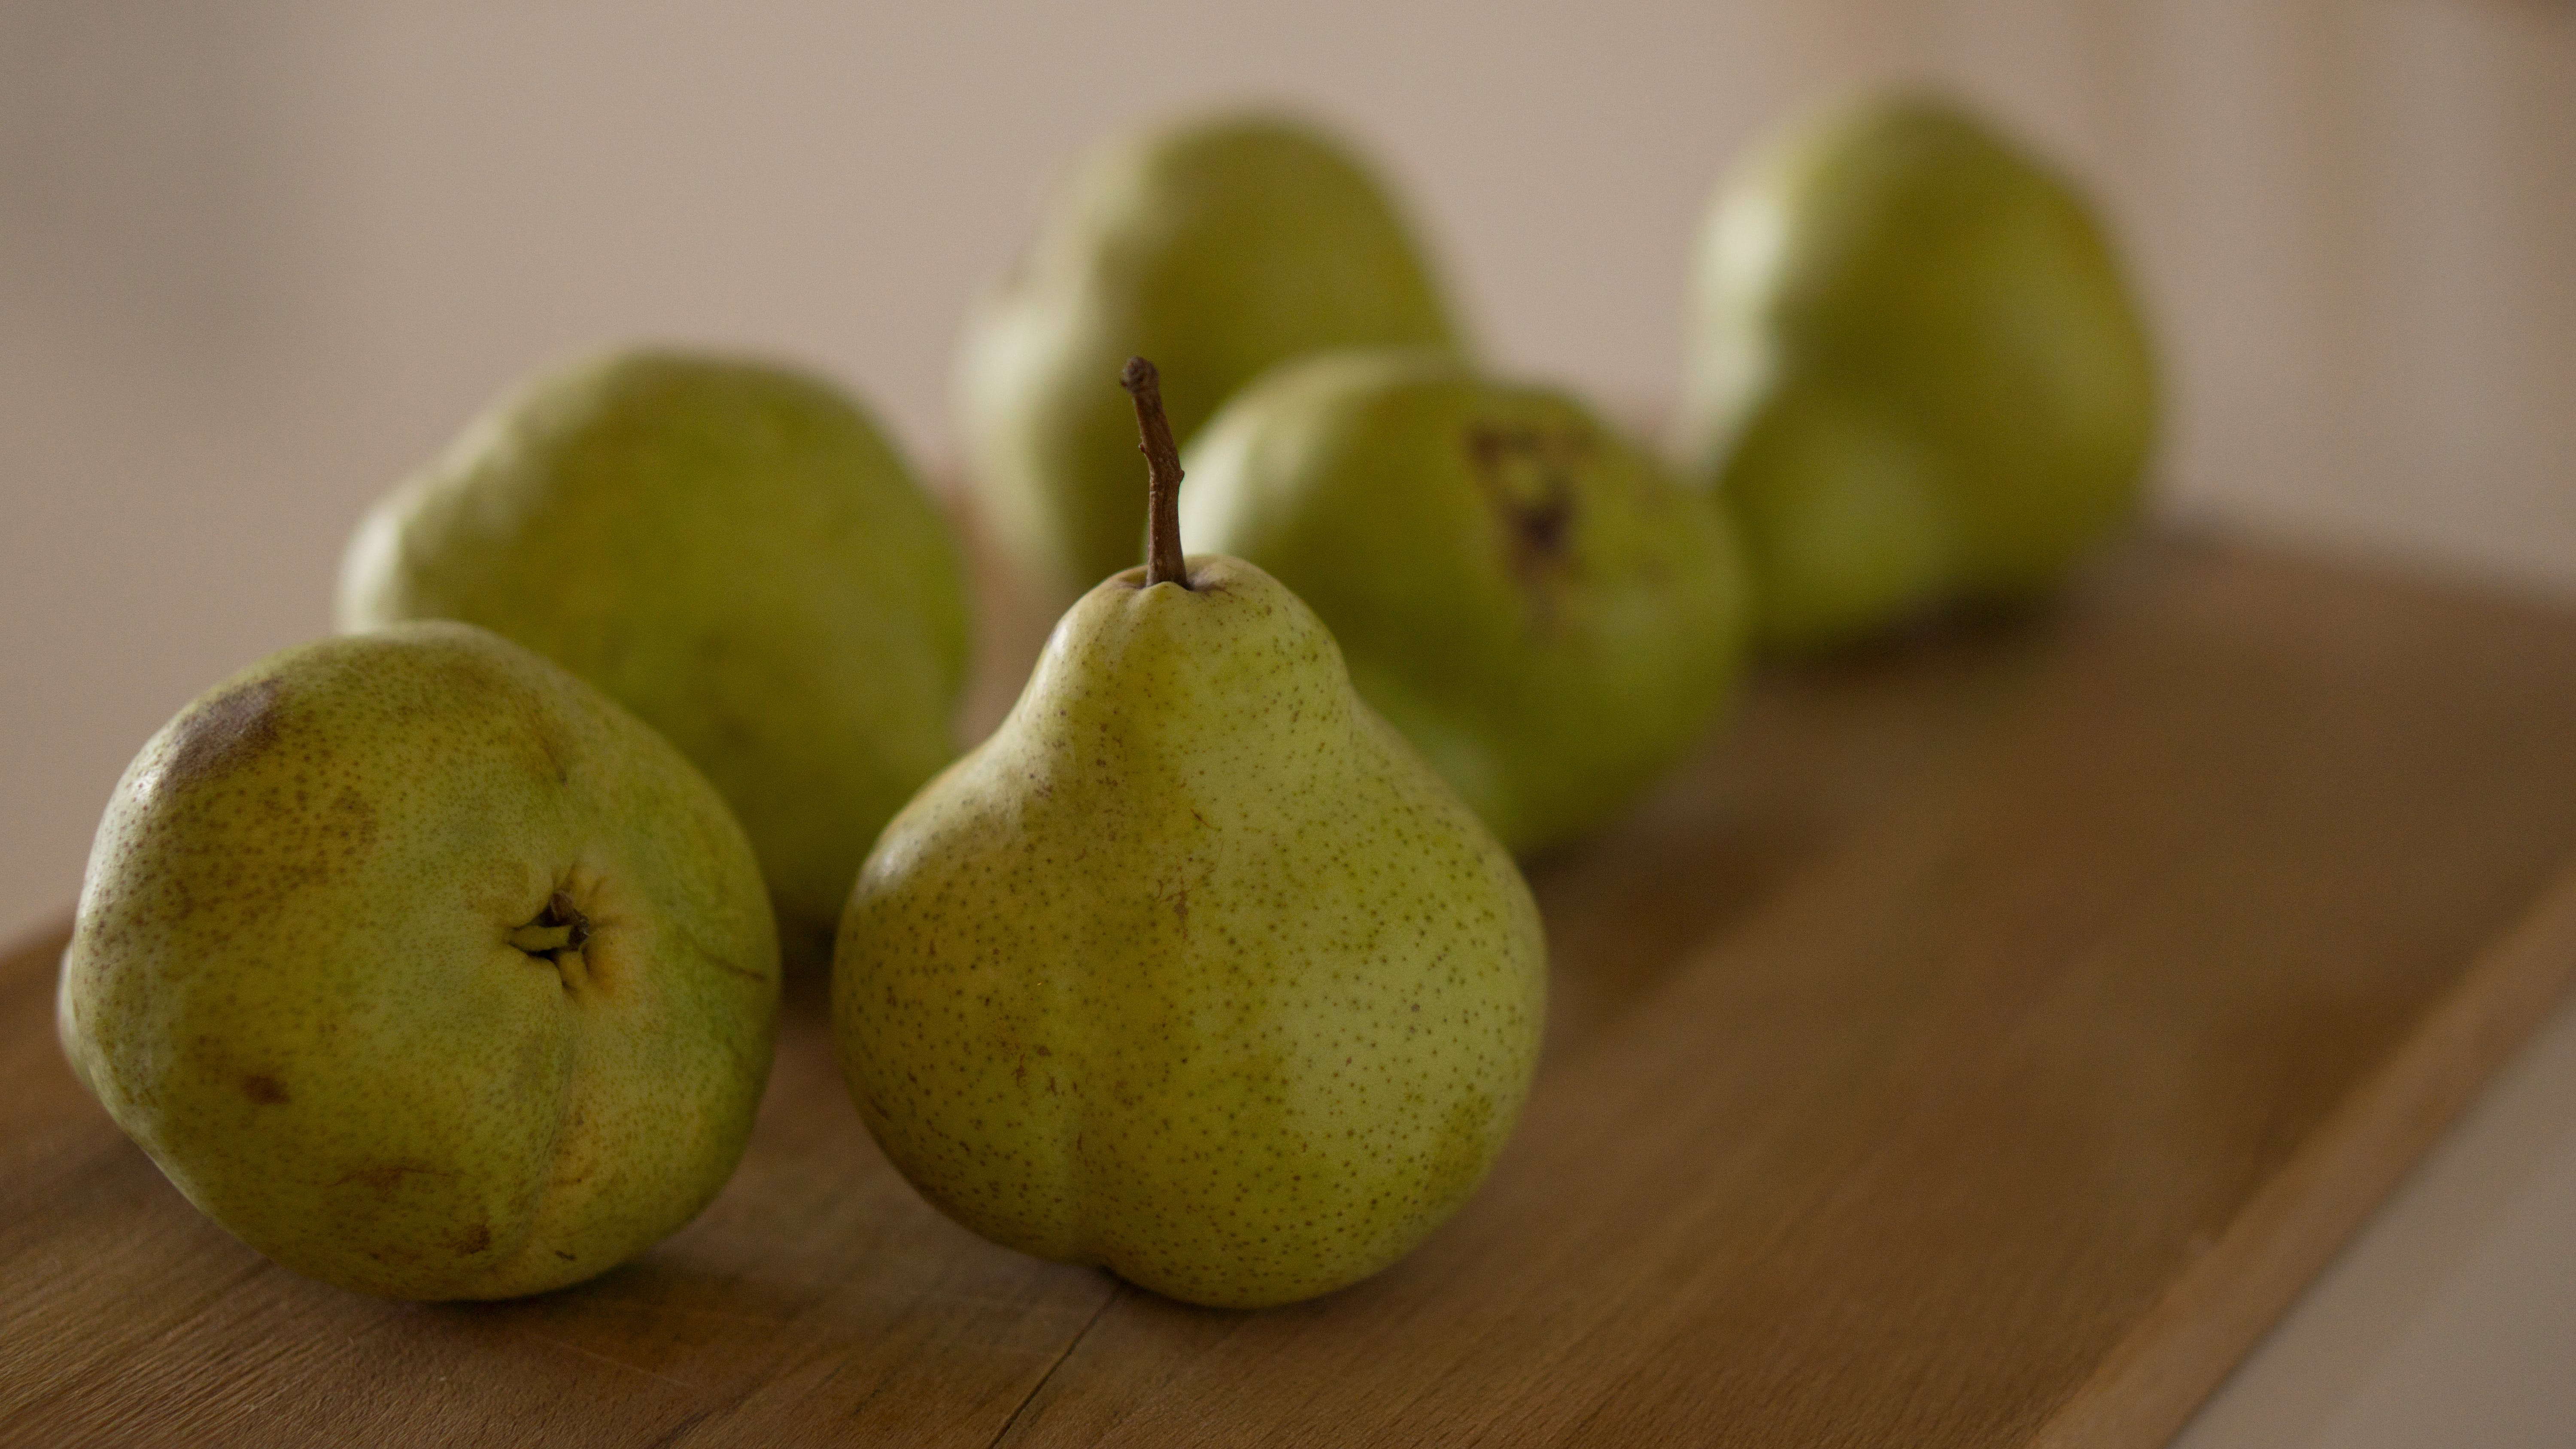 Free stock photo of pears, table, wooden board